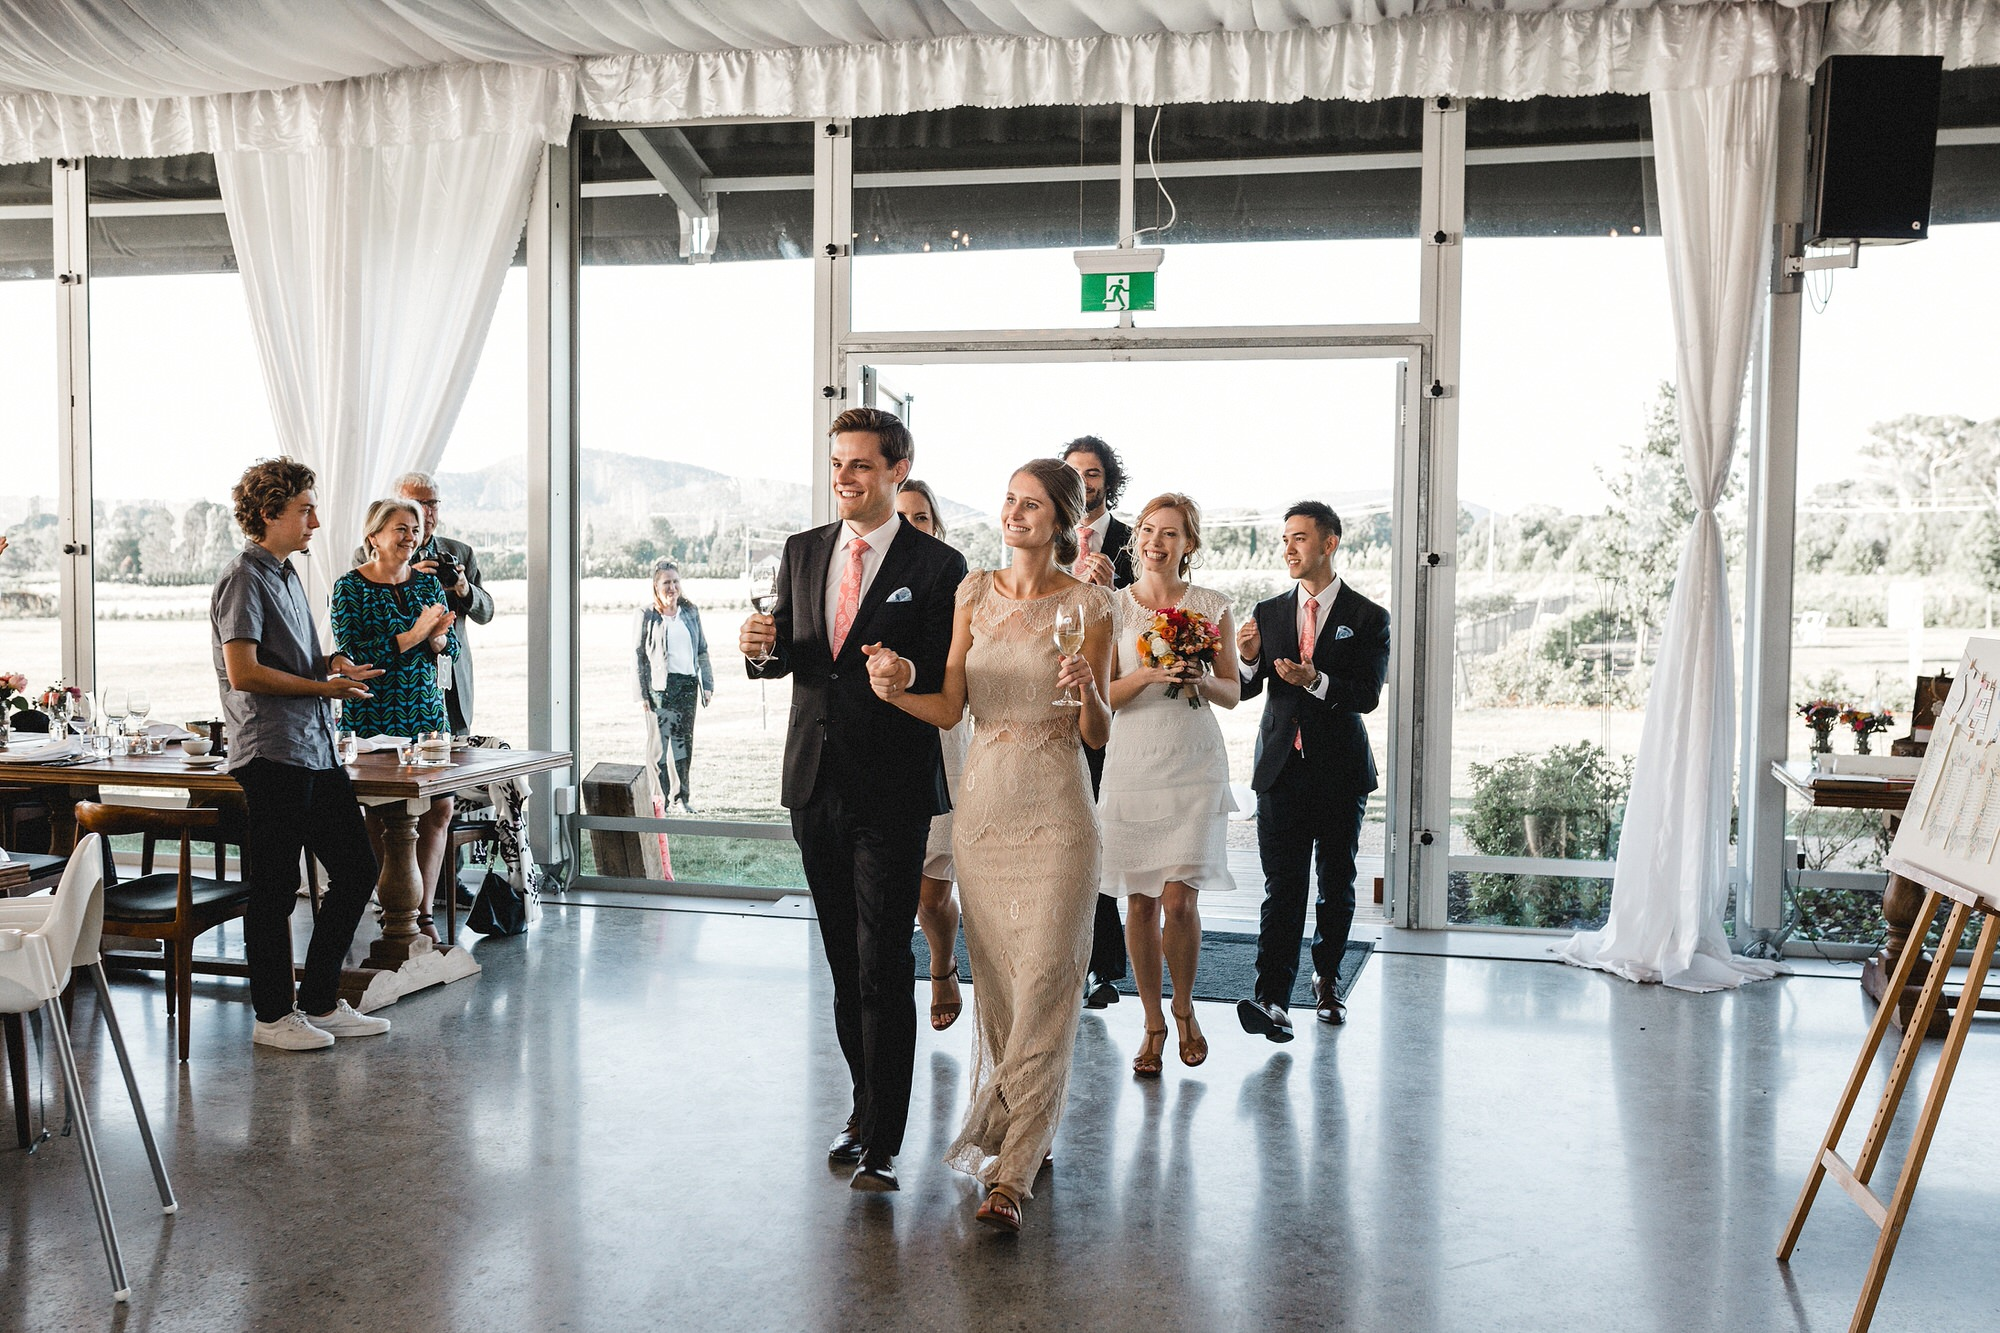 Pialligo Estate Wedding, Grace Loves Lace, Indie, Boho, Country wedding, maleny wedding photographer, sunshine coast wedding photography, brisbane, gold coast wedding photographer